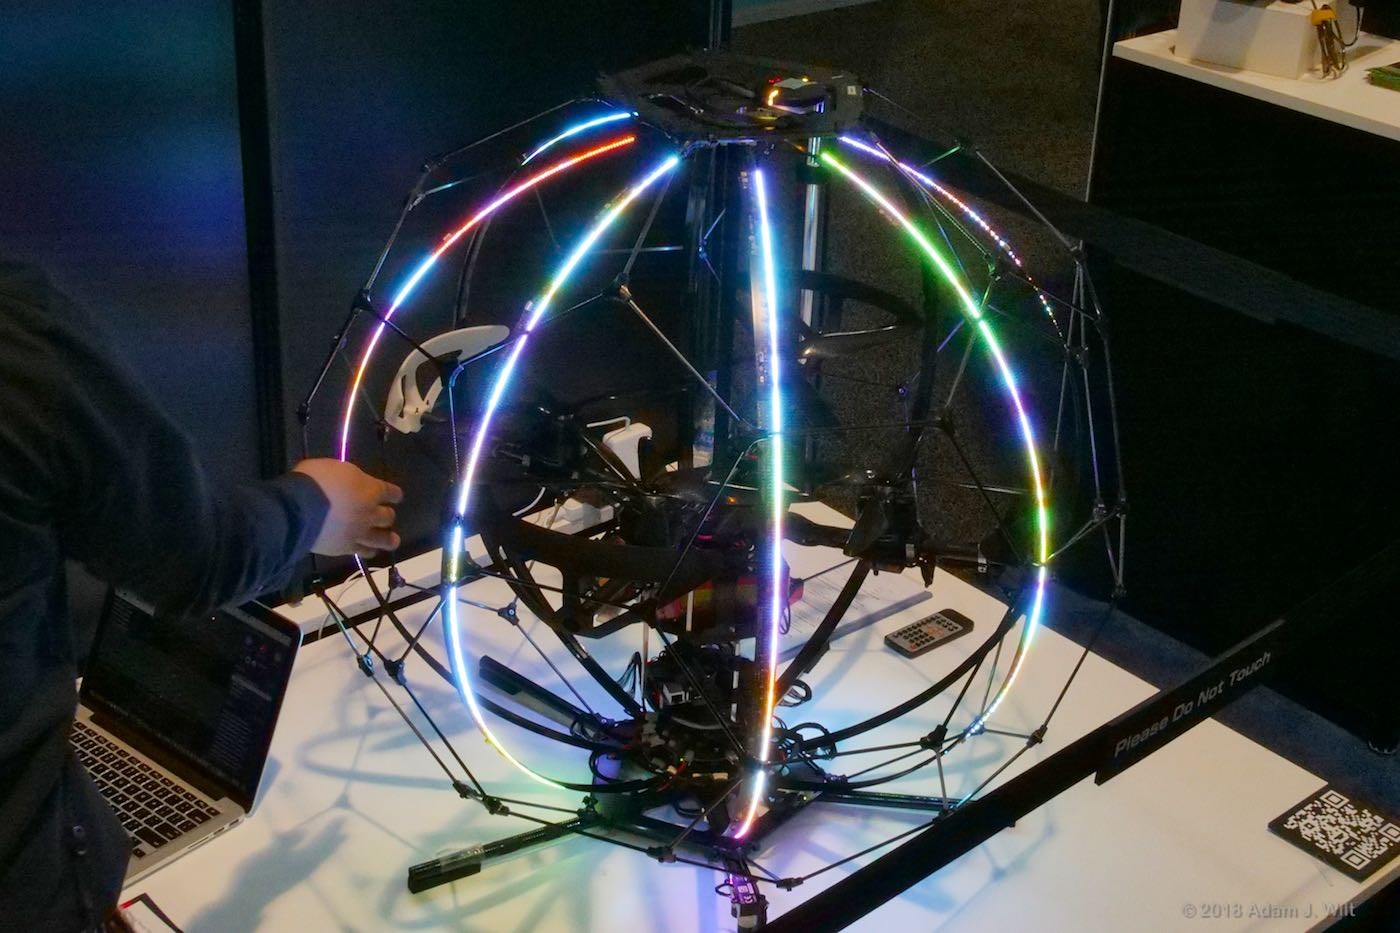 Spherical Drone Display with light bars at rest